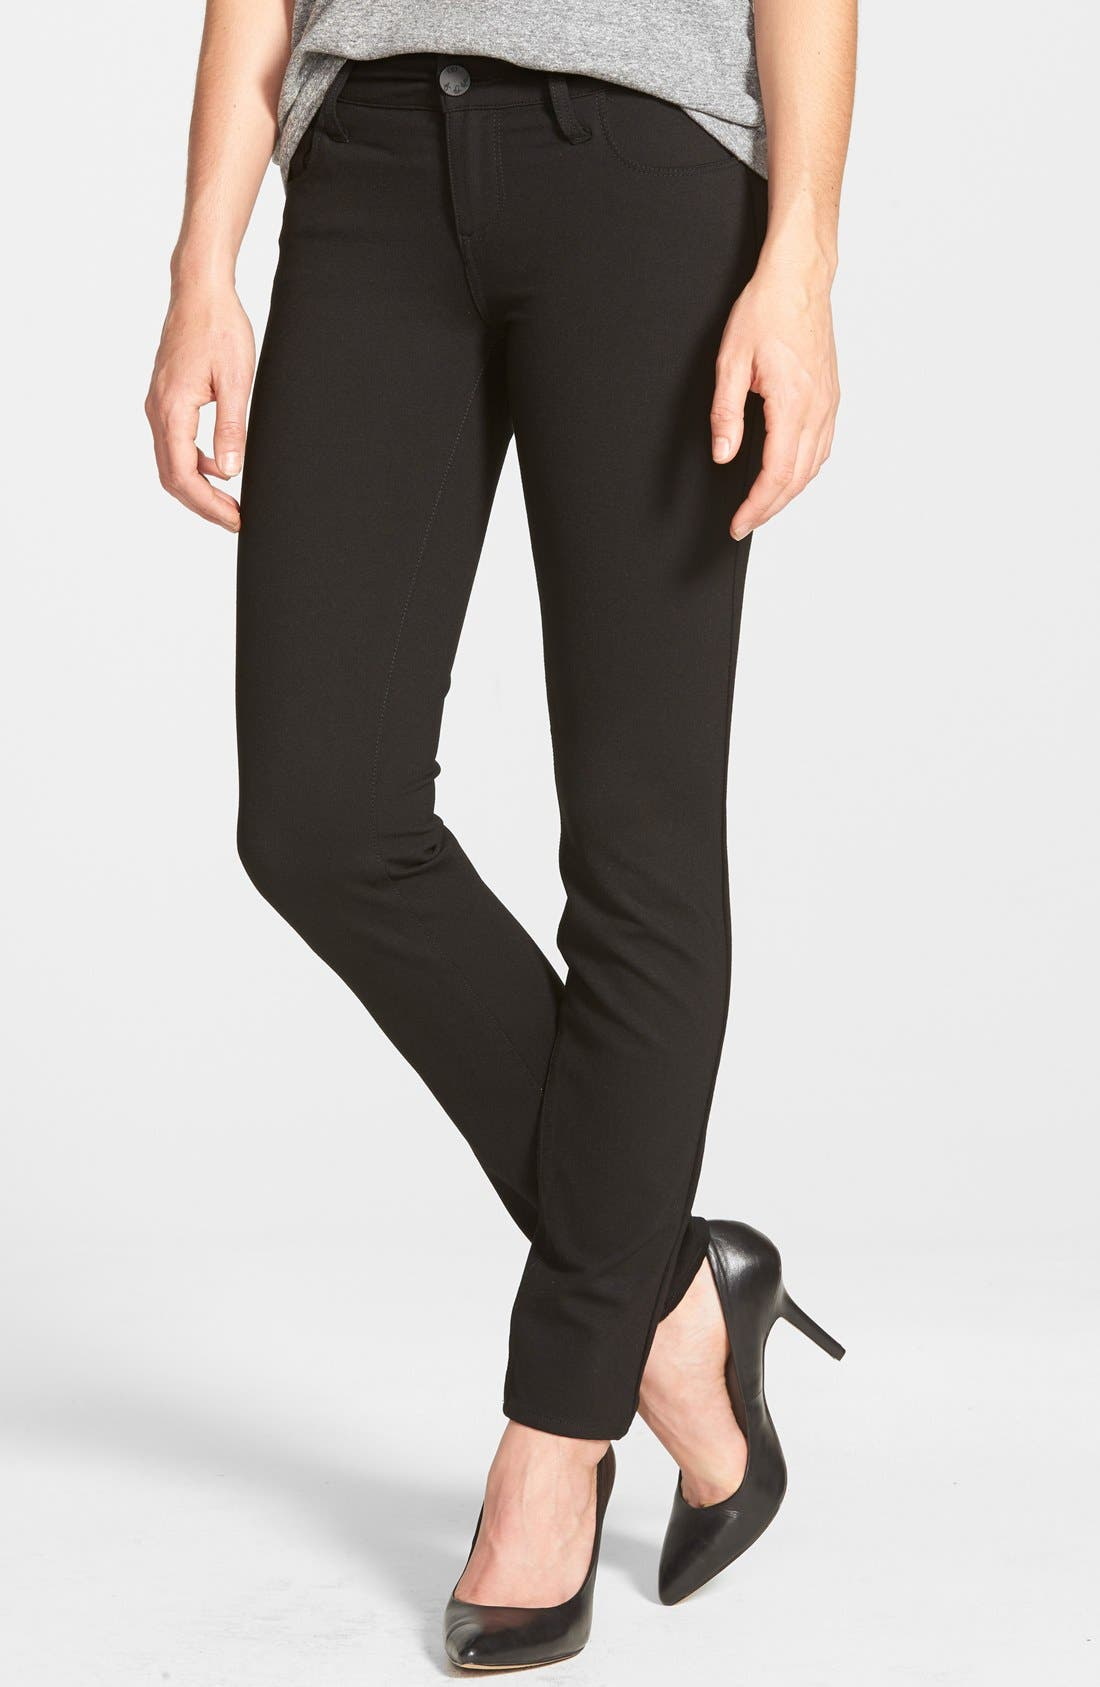 Alternate Image 1 Selected - KUT from the Kloth 'Mia' Stretch Knit Five-Pocket Skinny Pants